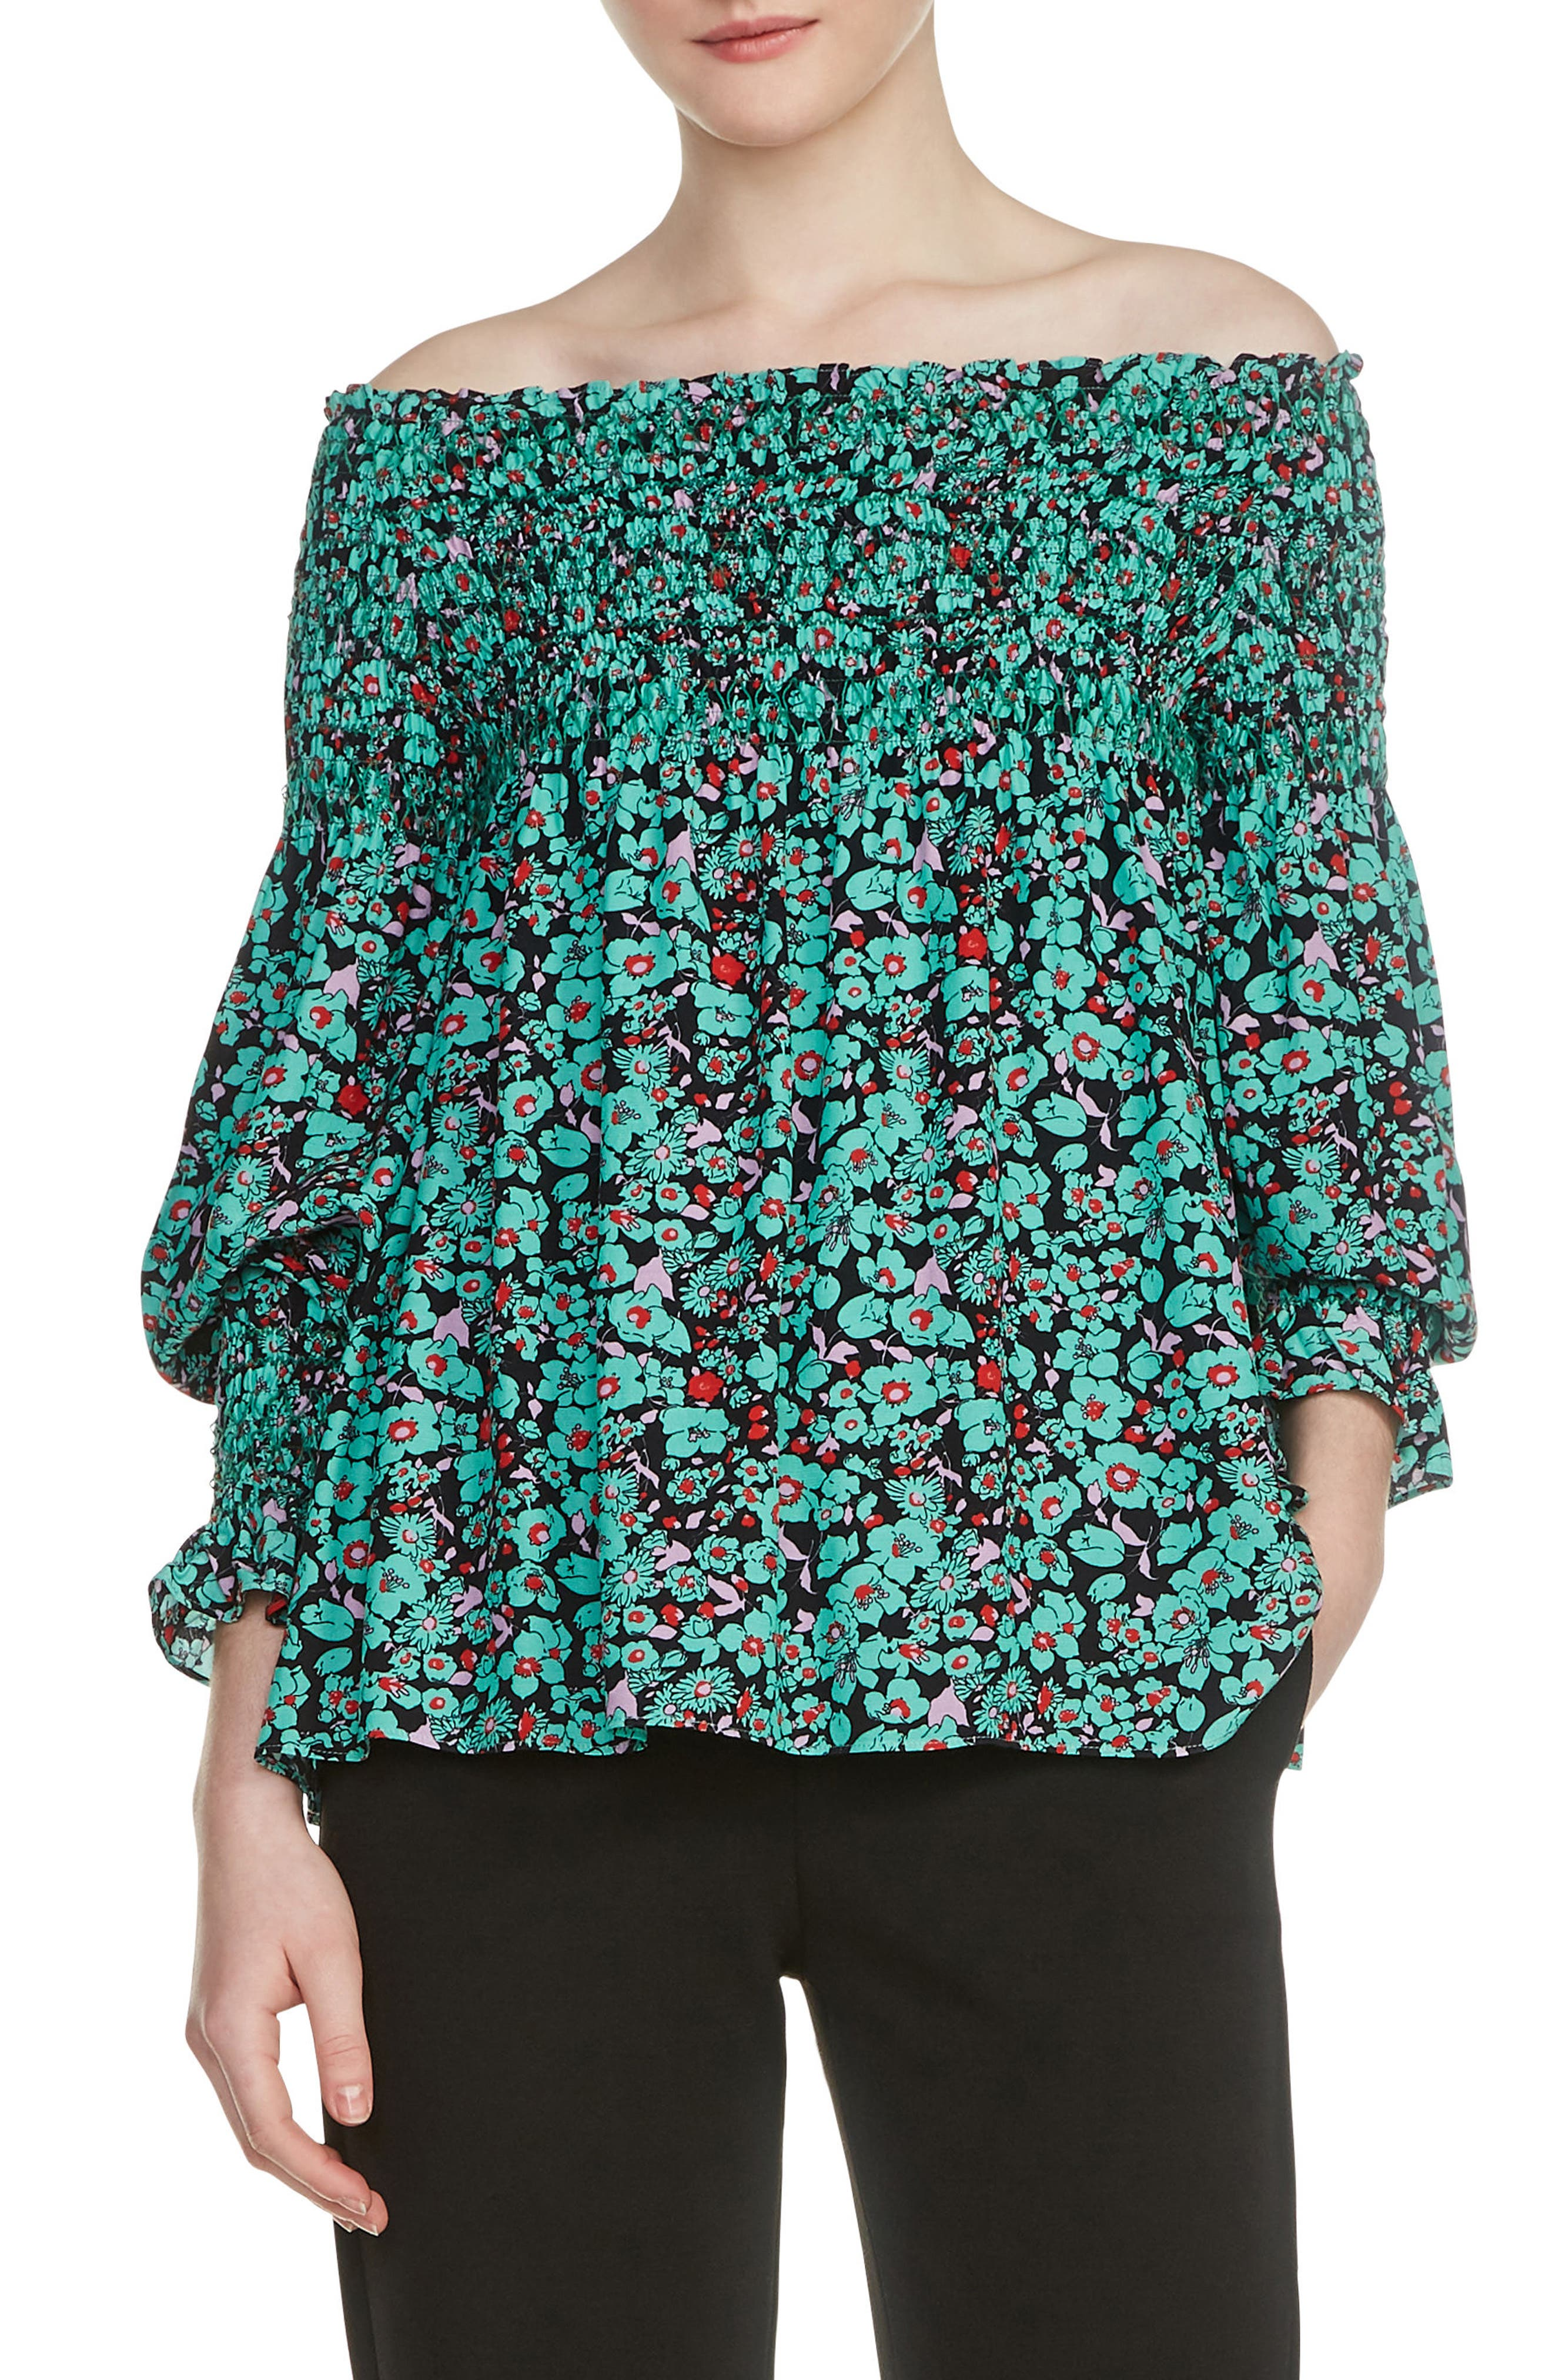 Lafine Off the Shoulder Top,                             Main thumbnail 1, color,                             Printed